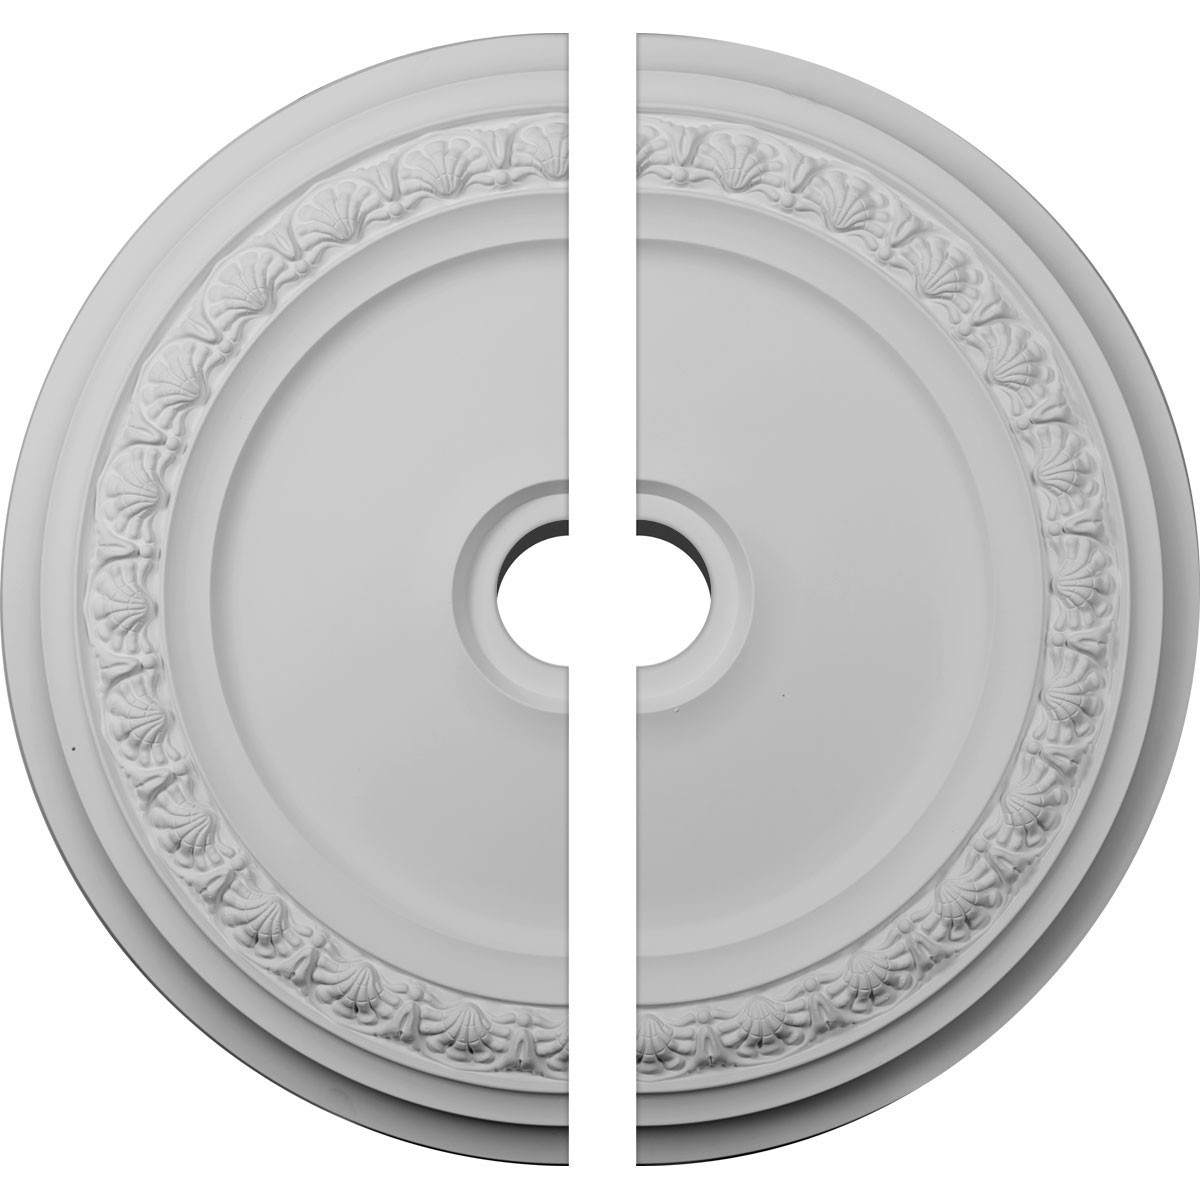 """EM-CM31CA2-04000 - 31 1/8""""OD x 4""""ID x 1 1/2""""P Carlsbad Ceiling Medallion, Two Piece (Fits Canopies up to 5 1/2"""")"""